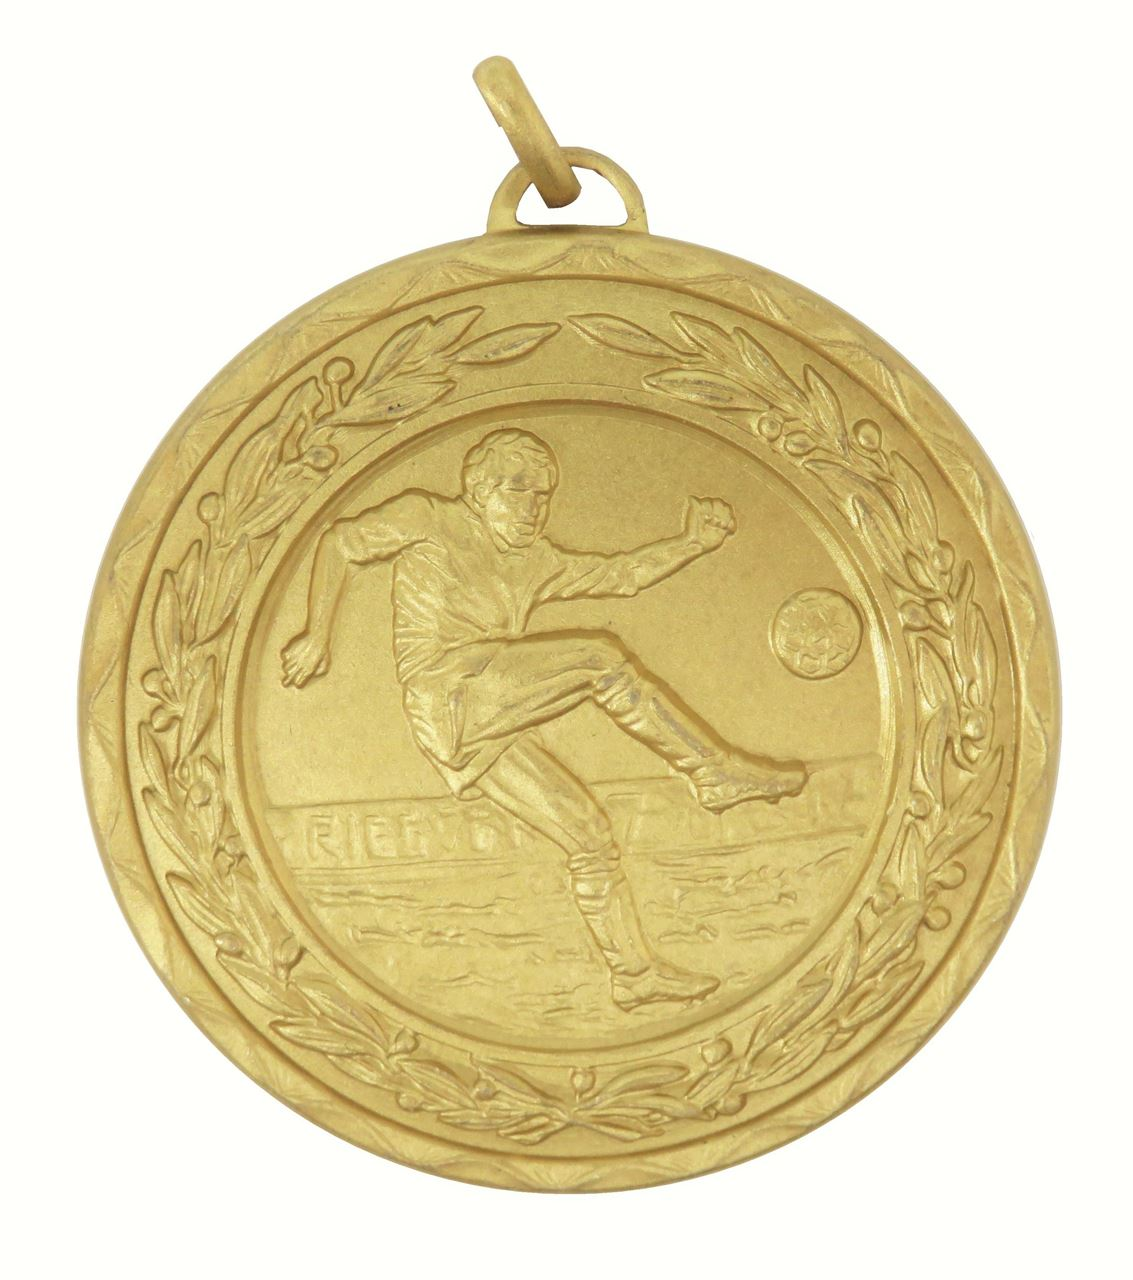 Gold Laurel Economy Footballer Medal (size: 50mm) - 4040E